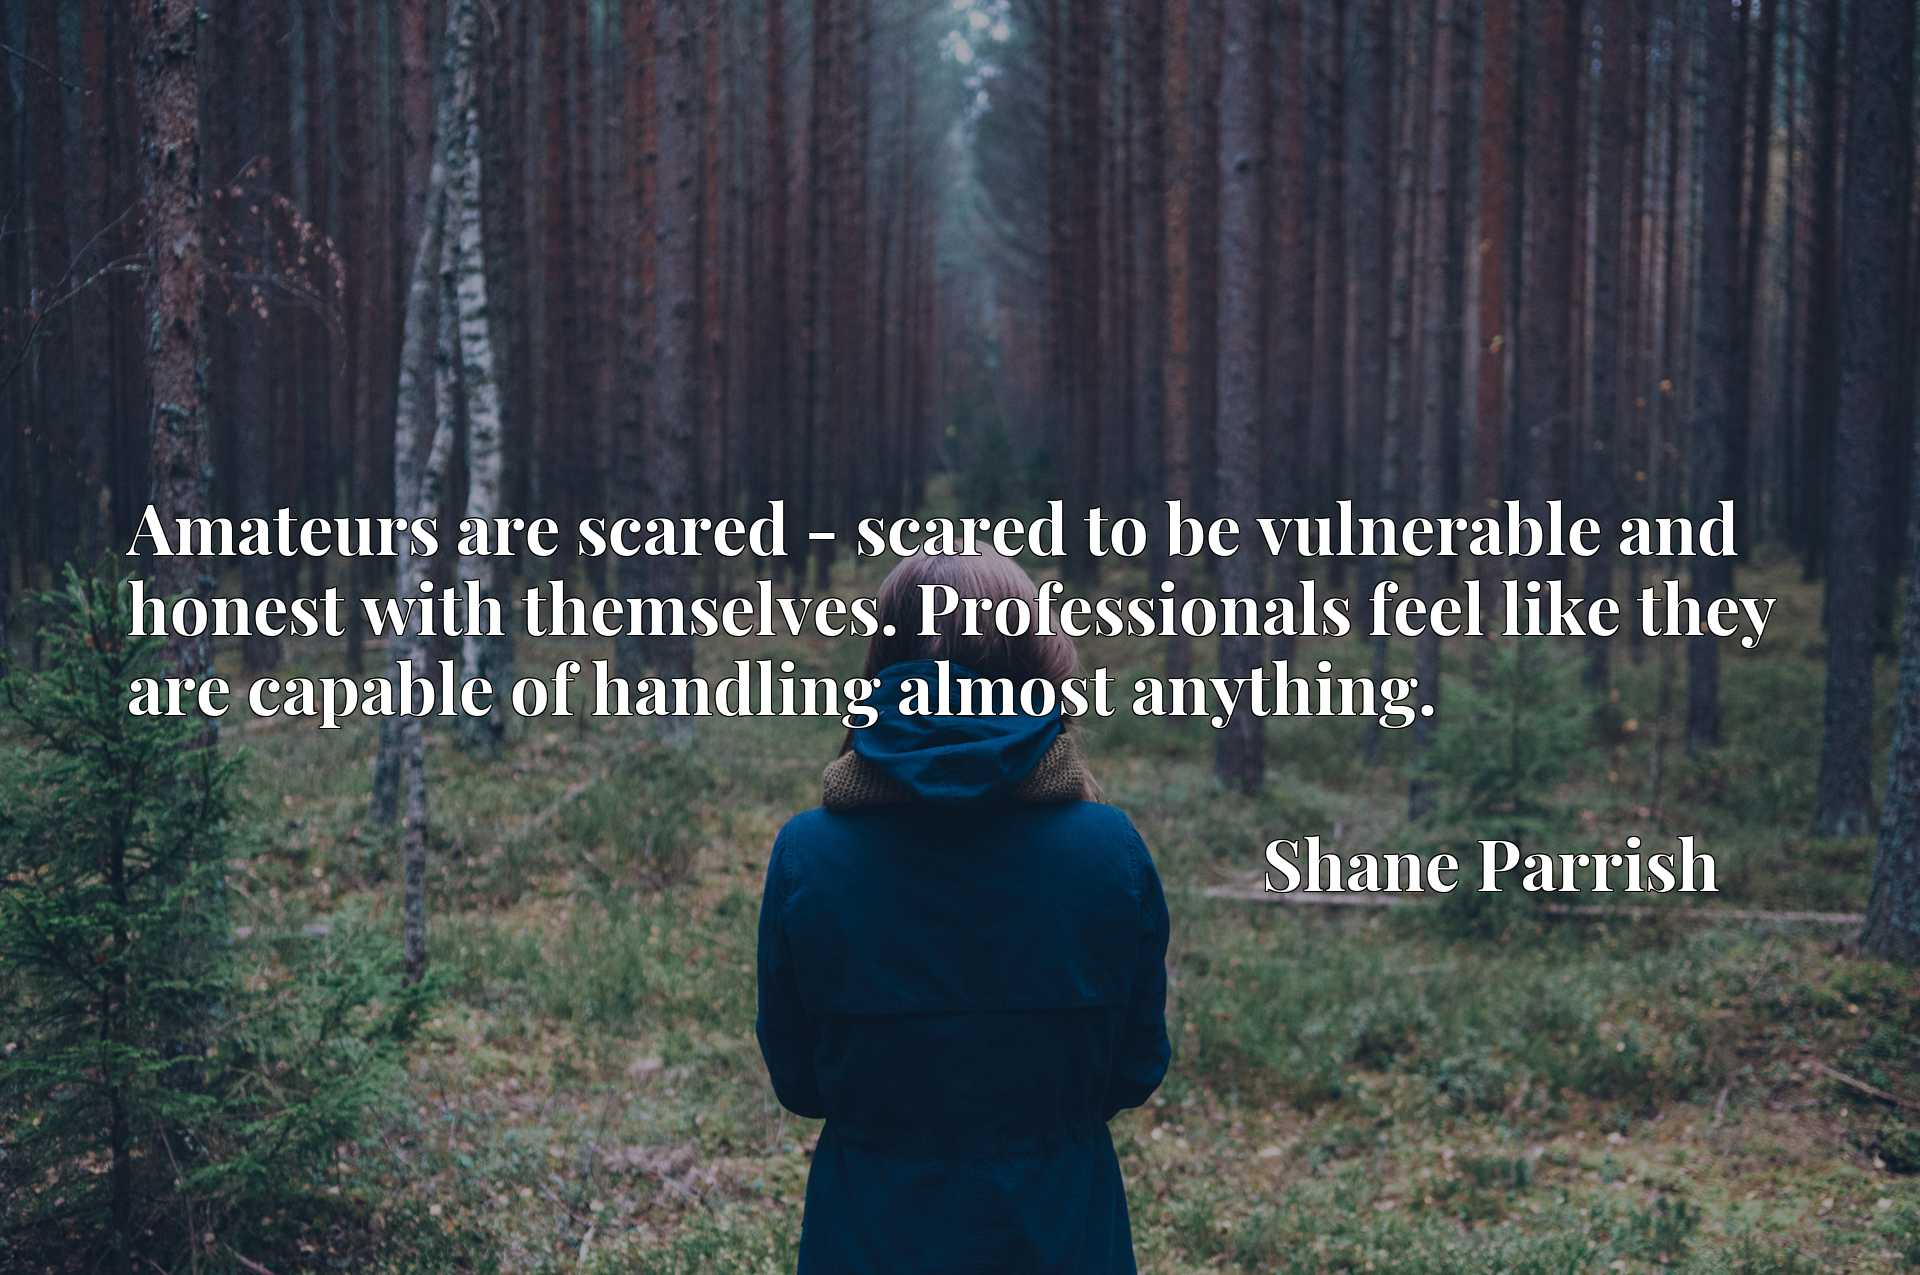 Amateurs are scared - scared to be vulnerable and honest with themselves. Professionals feel like they are capable of handling almost anything.